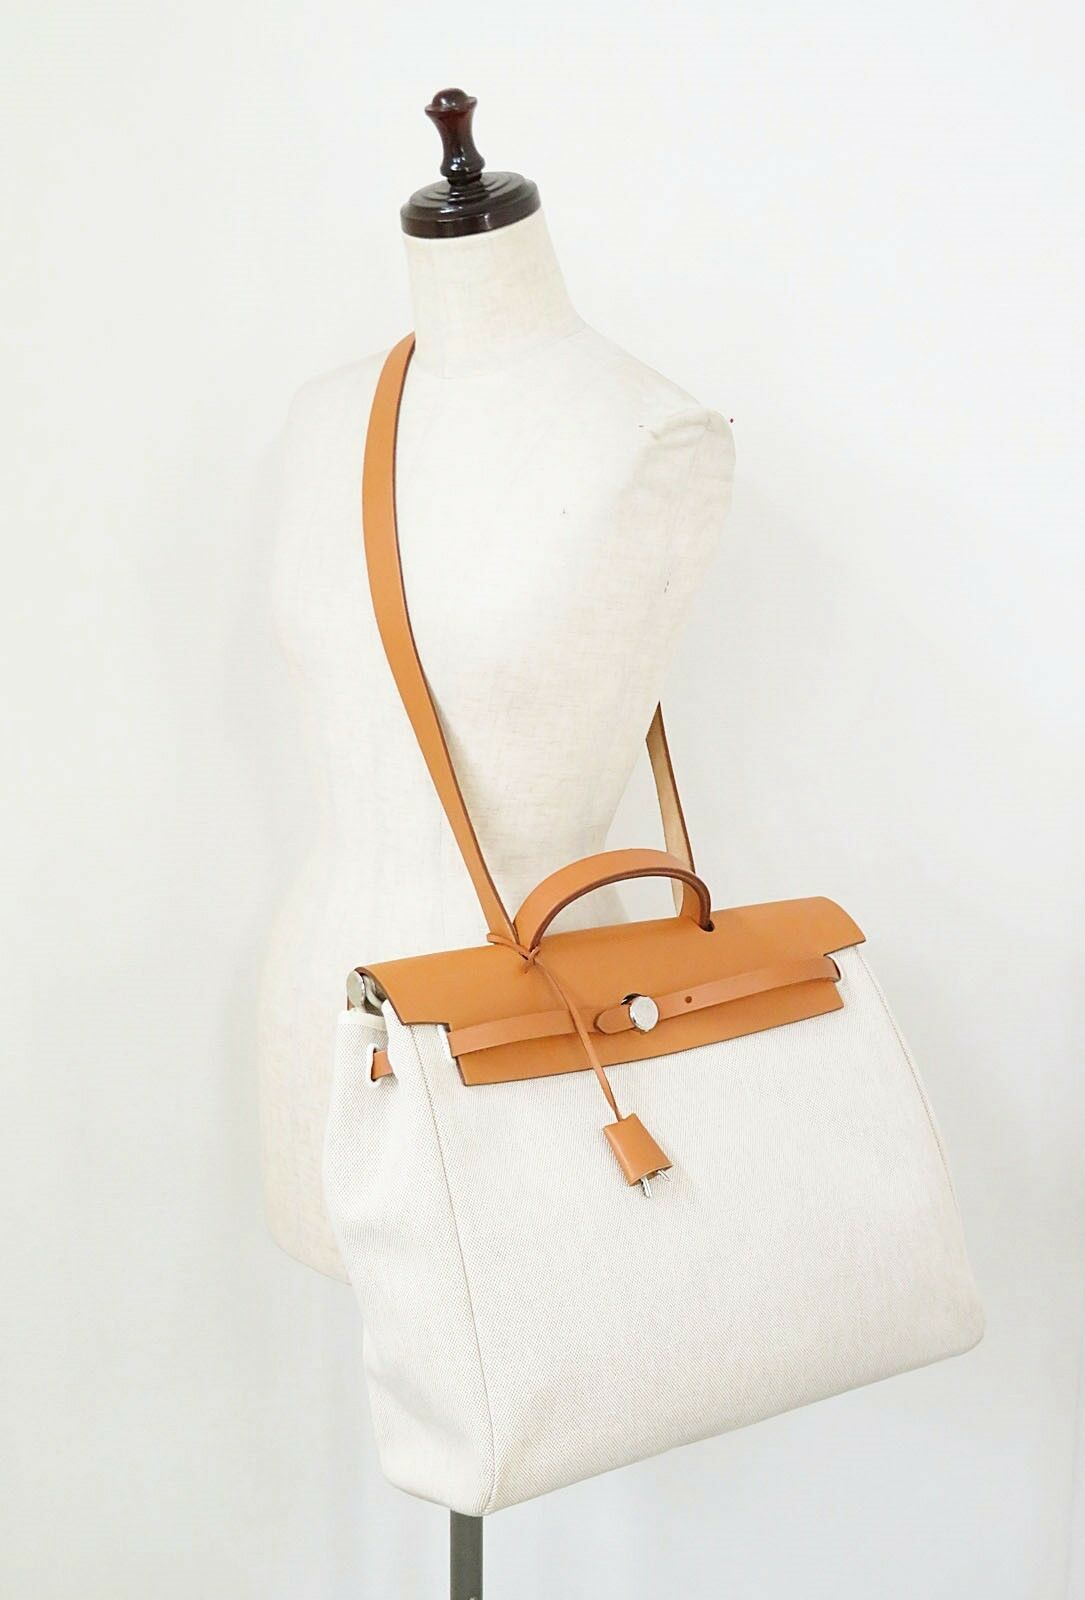 Auth HERMES Her Bag 2 in 1 Beige Canvas and Leather Hand Shoulder Bag #31320 image 2